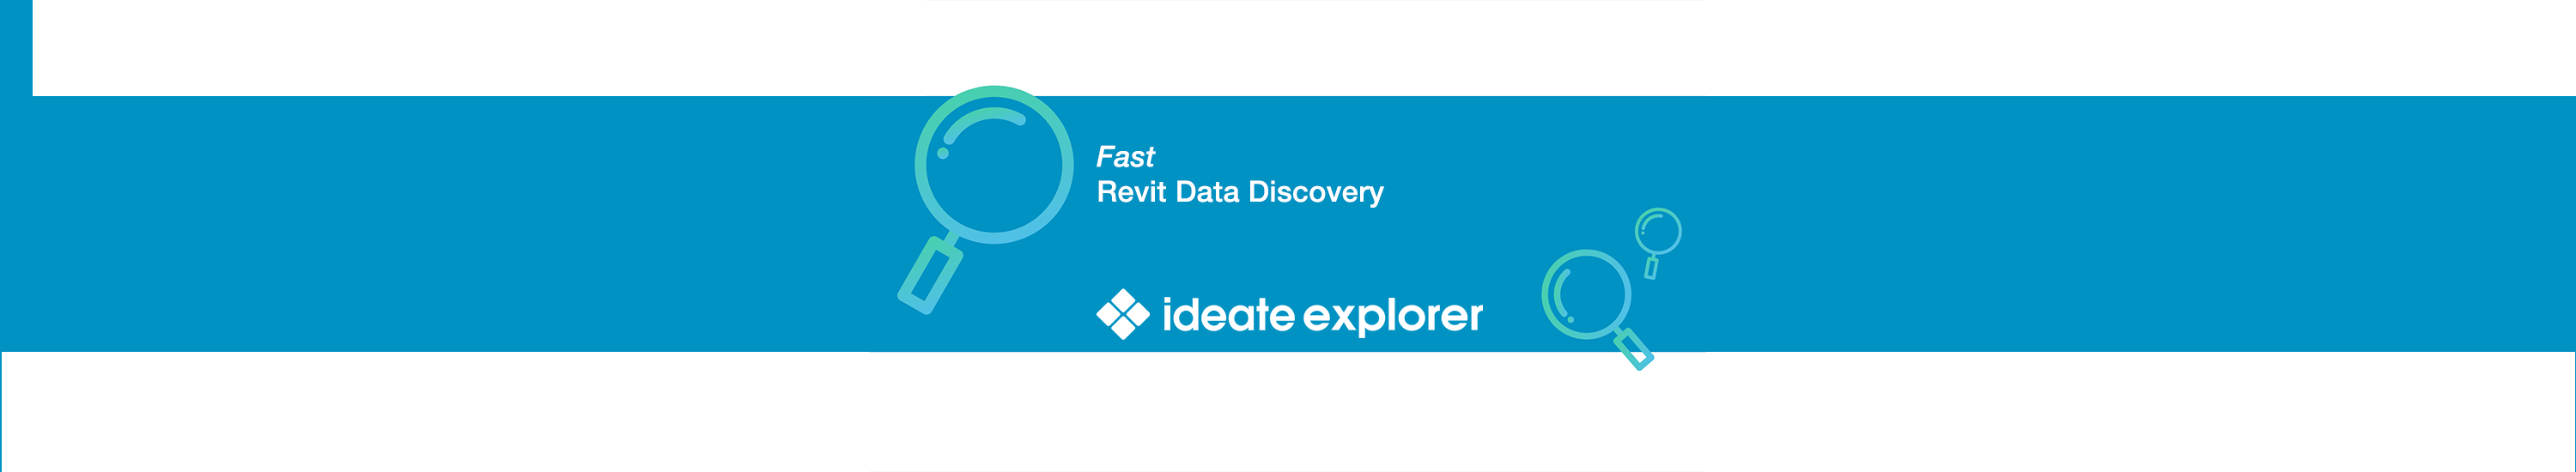 Ideate Explorer for Revit Data Discovery